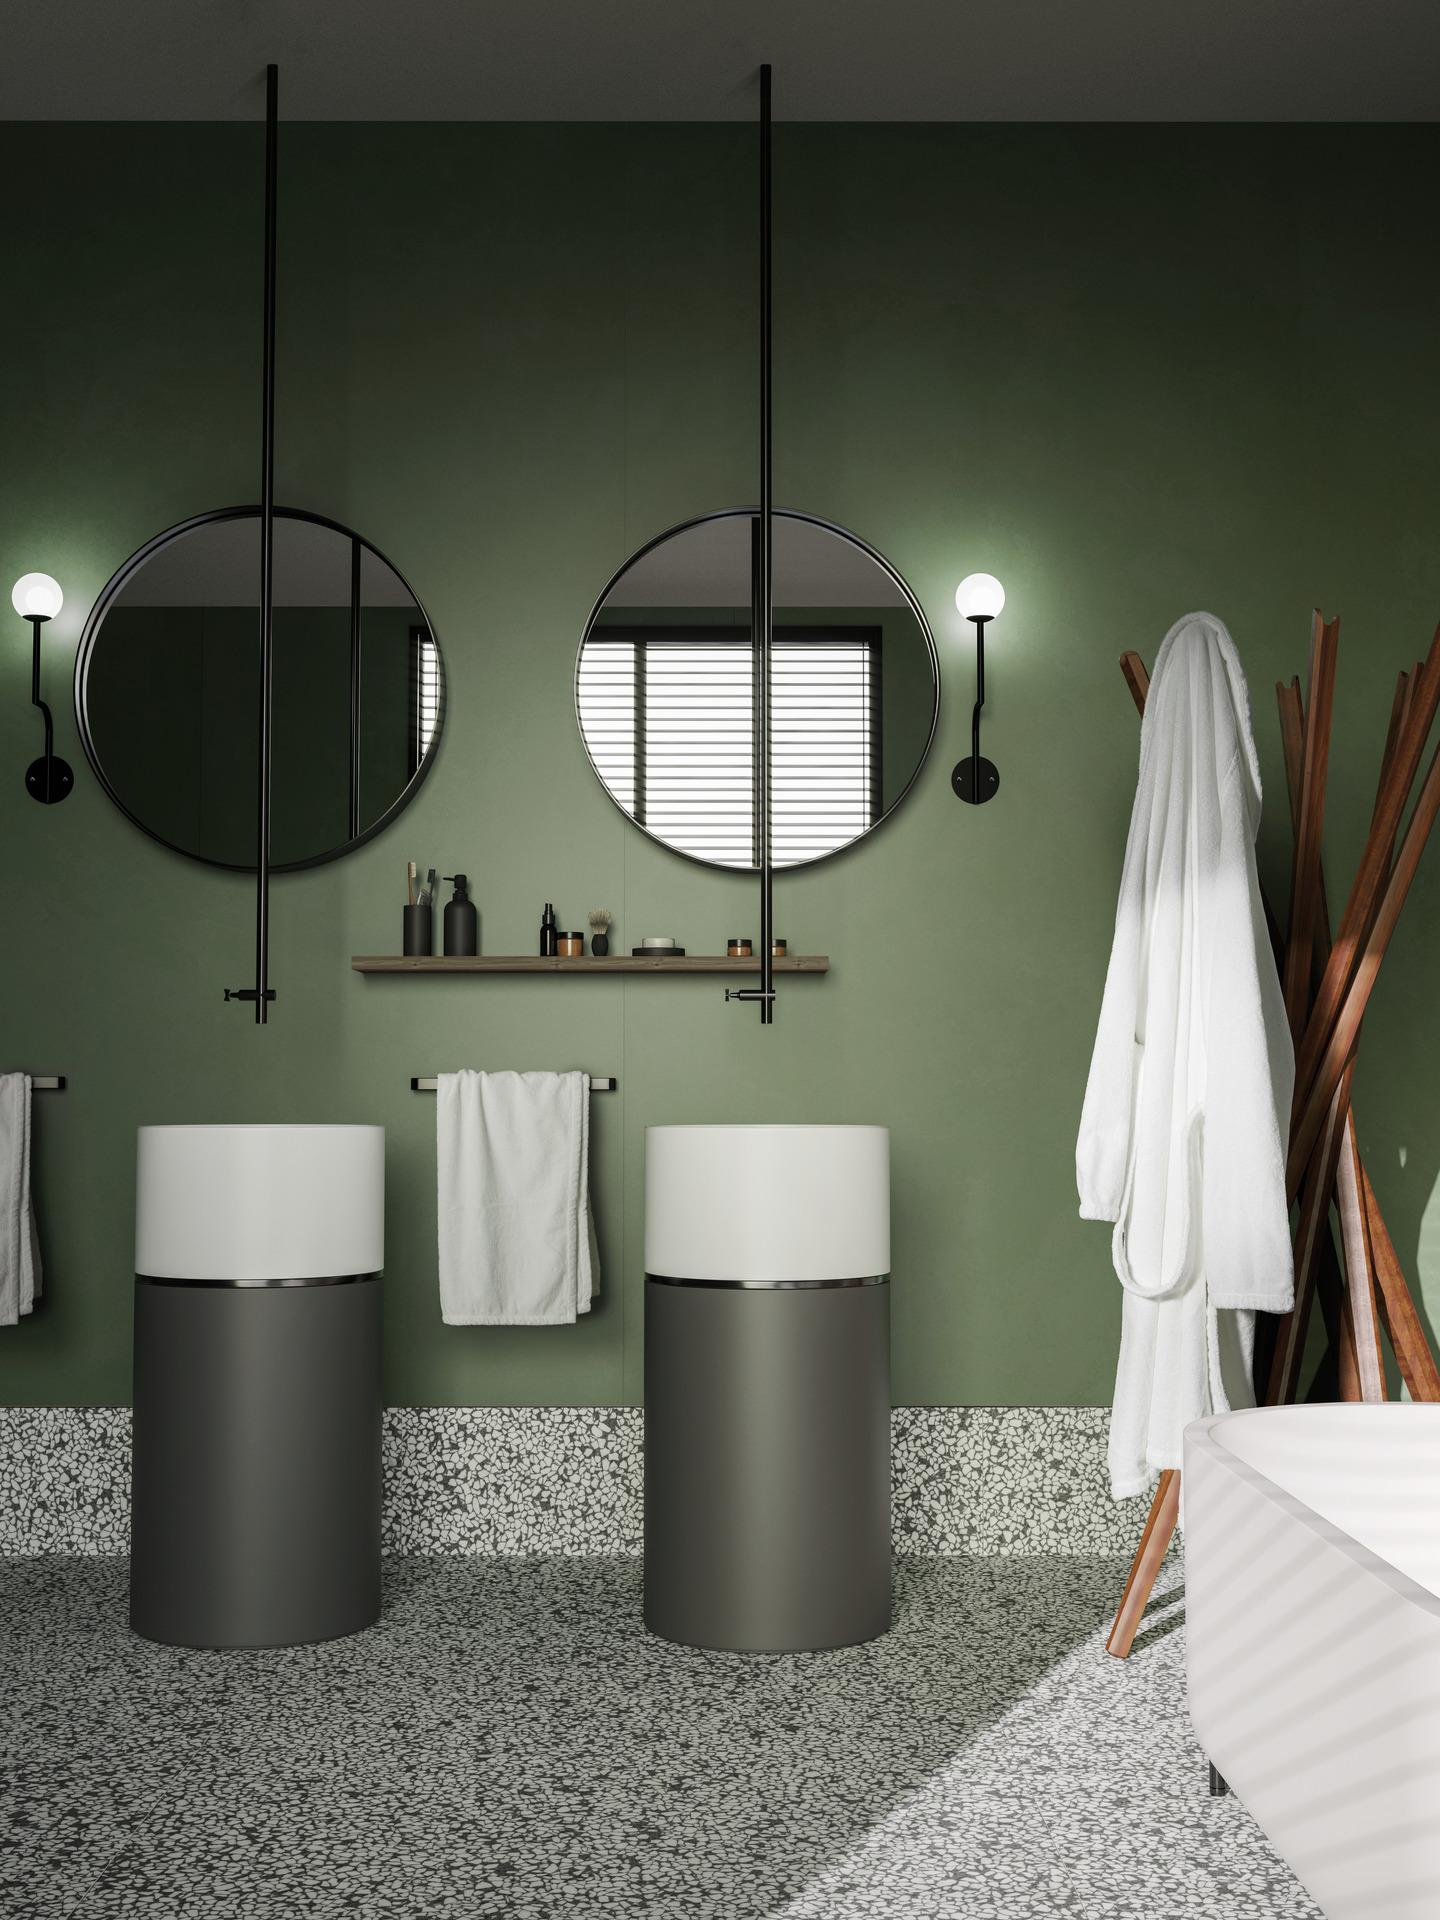 Grande resin look - Concrete Effect - Bathroom